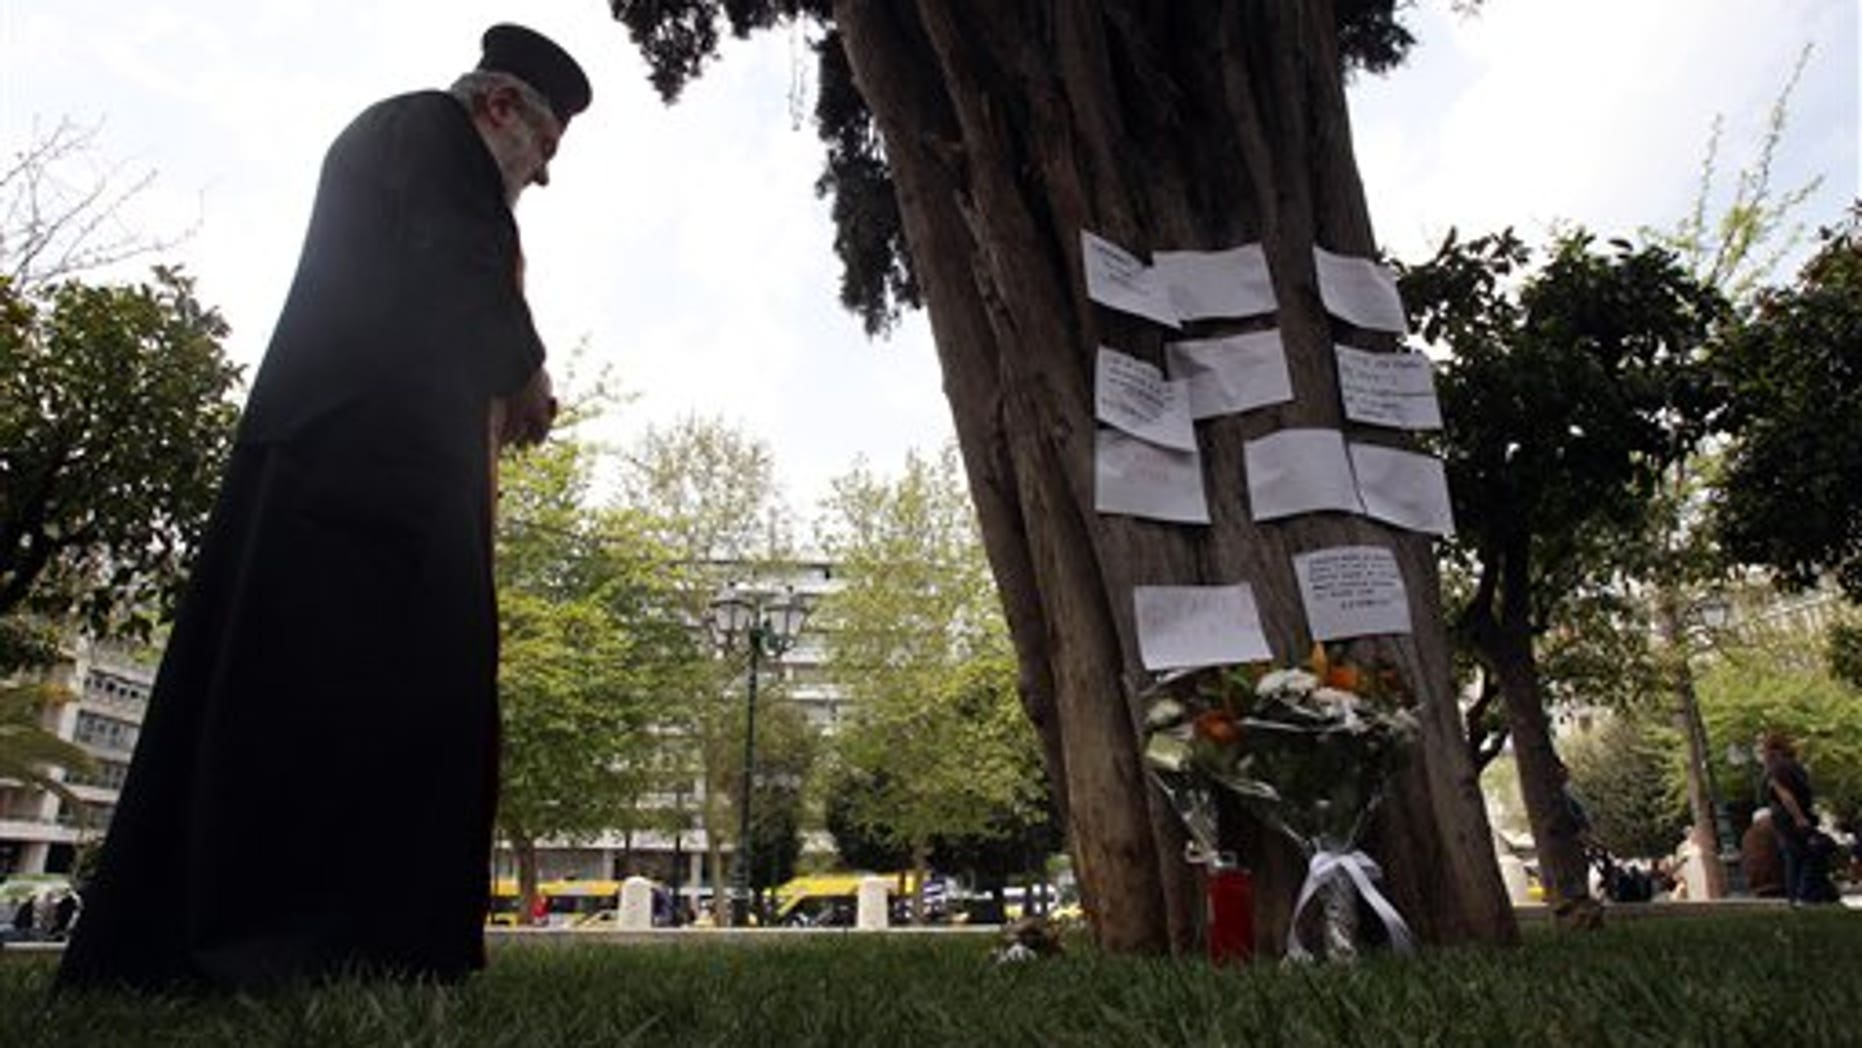 April 4, 2012: A Greek Orthodox priest holds a memorial service, at the site where an elderly man fatally shot himself at Athens' main Syntagma square.